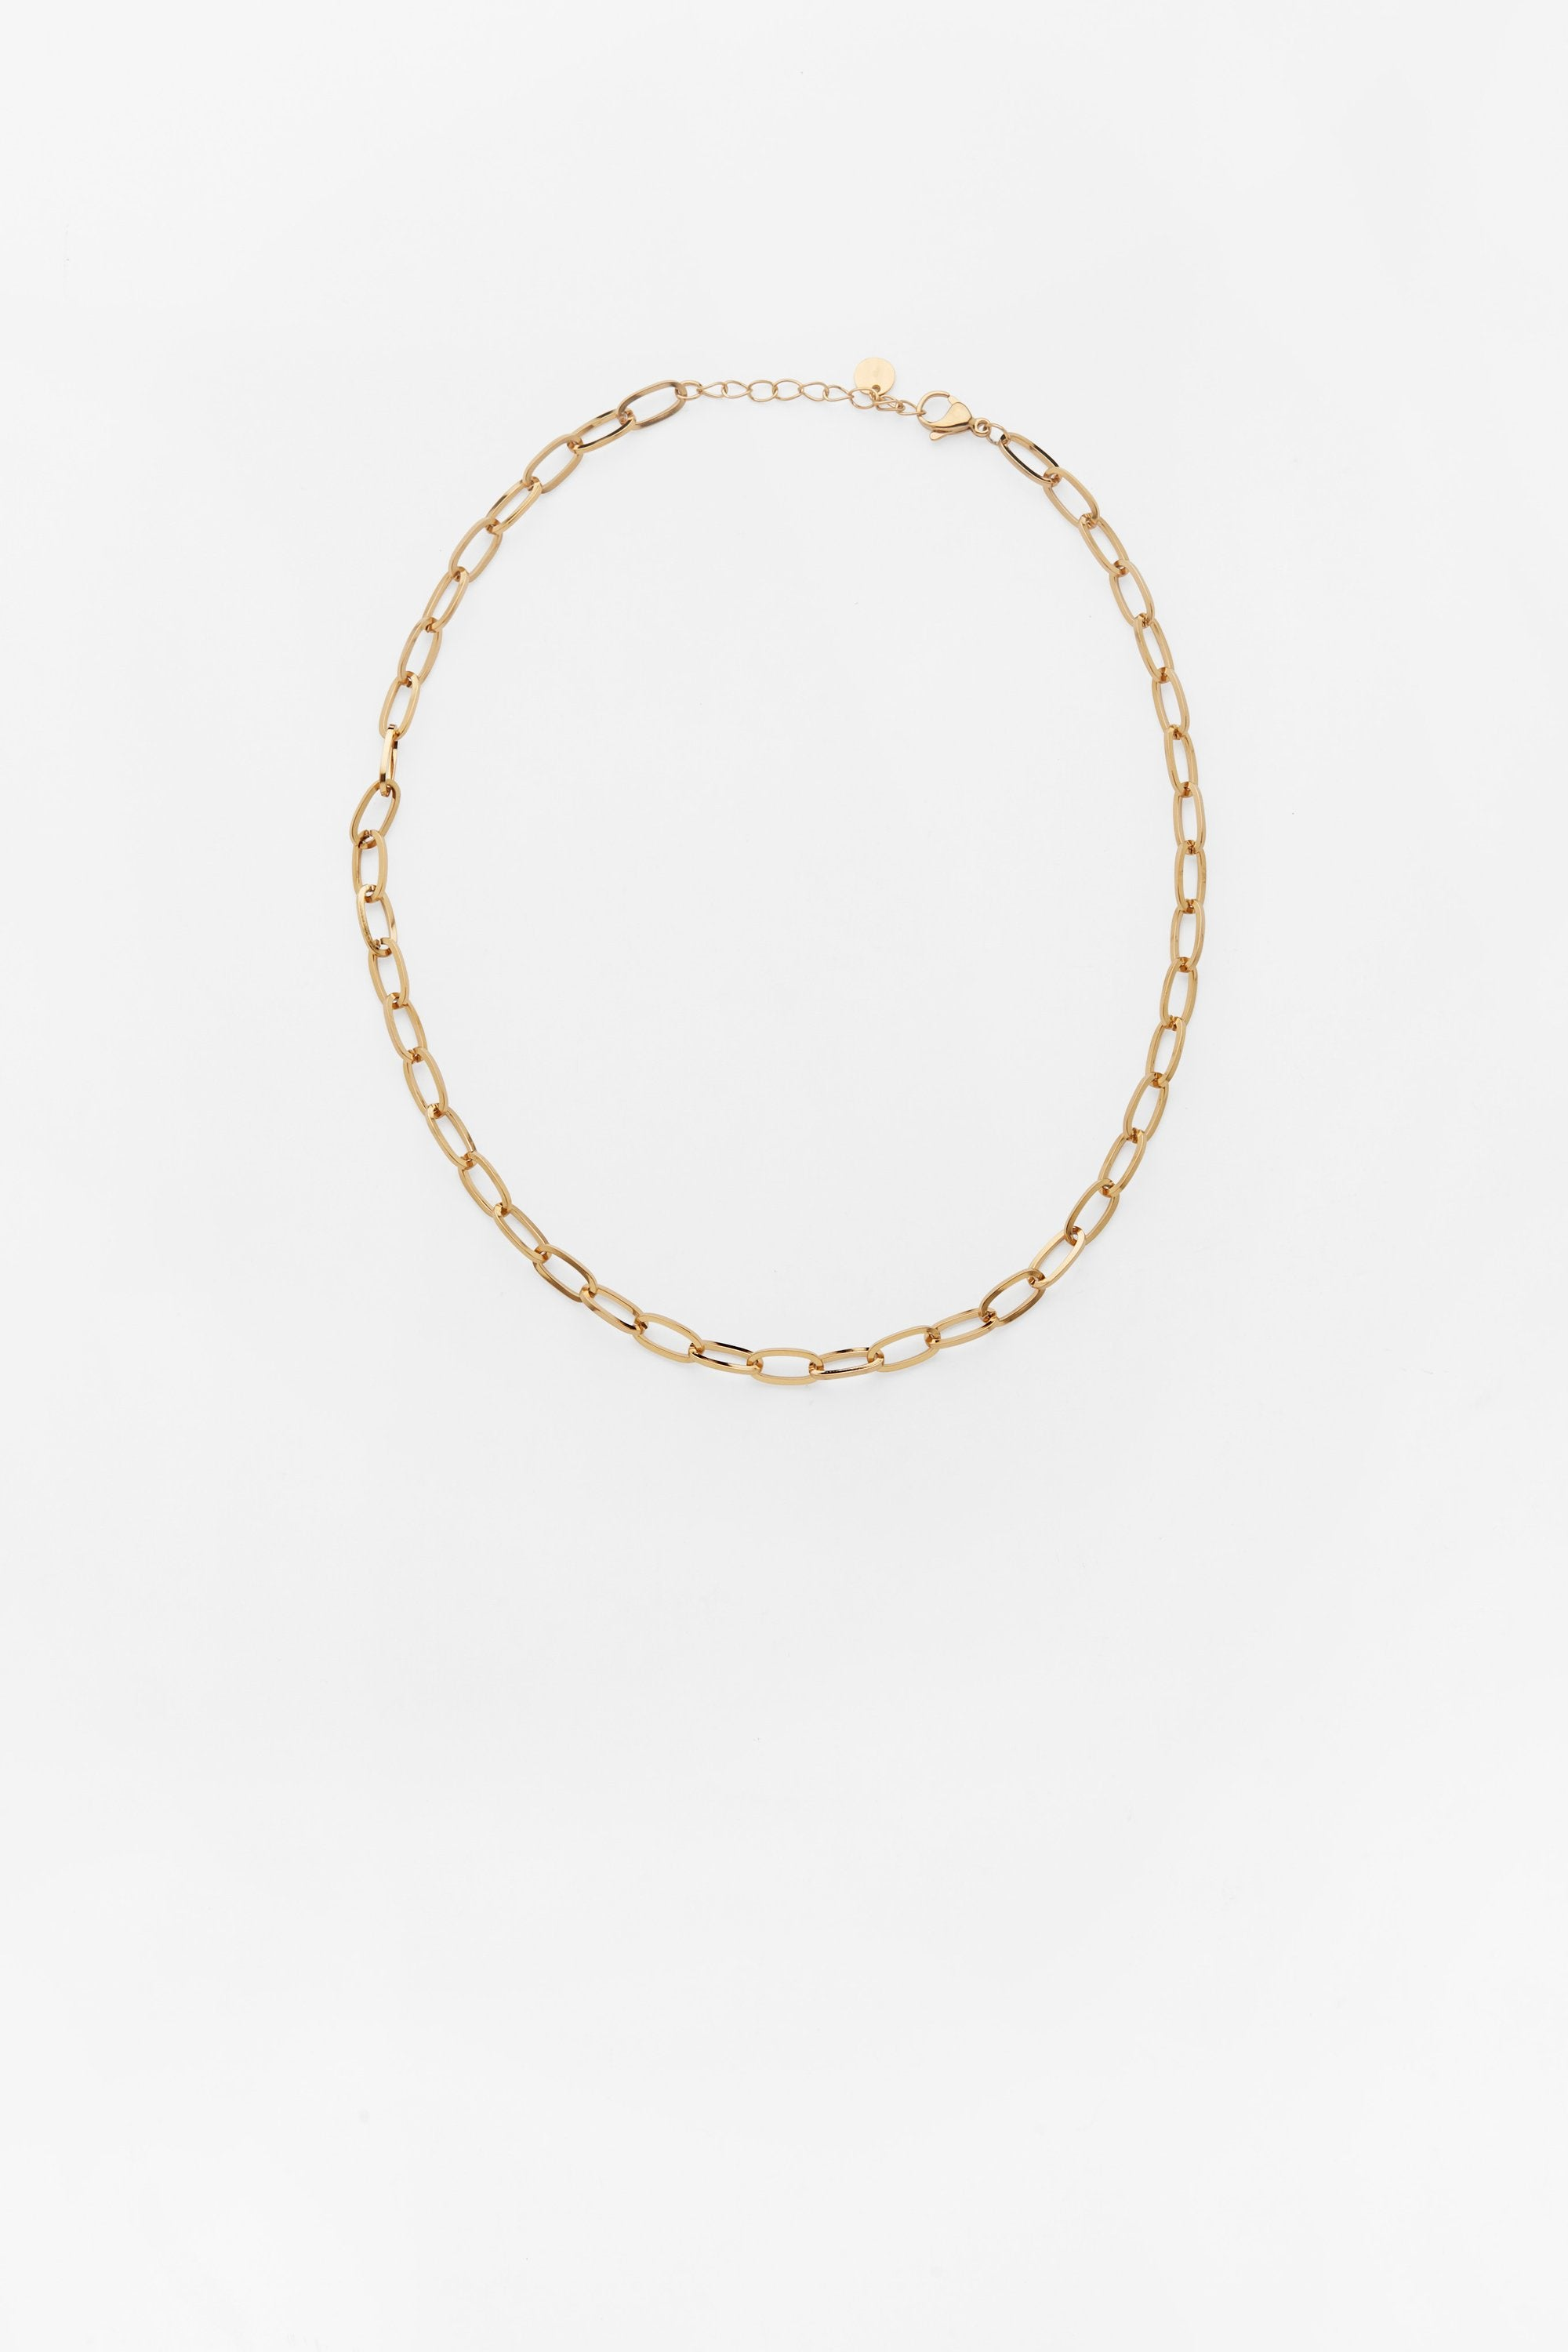 Reliquia Chloe Necklace - Gold